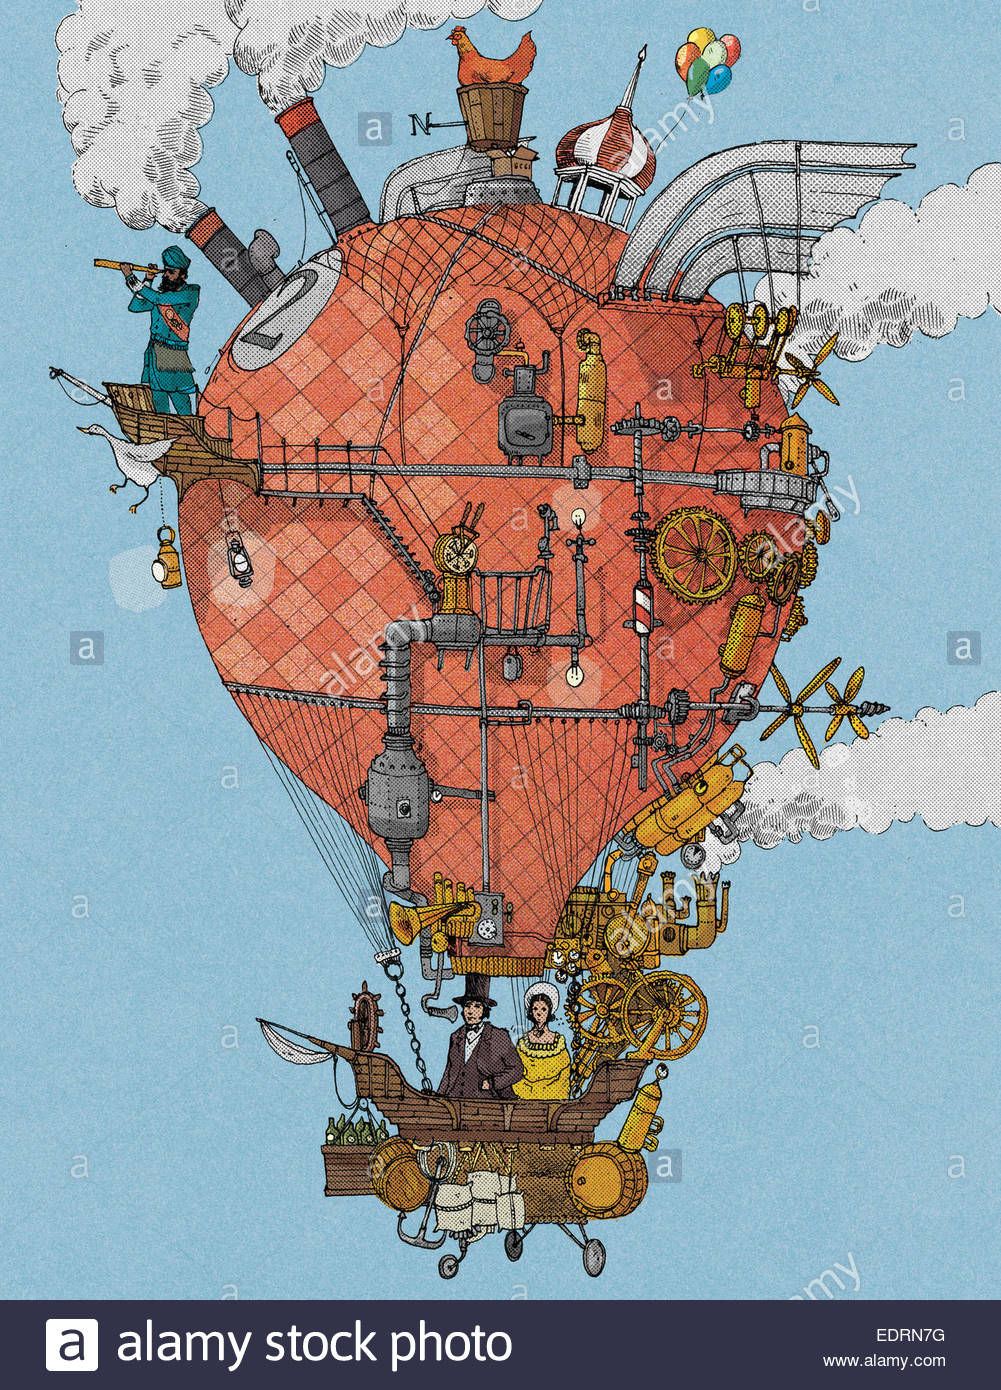 Old-fashioned explorers in homemade hot air balloon - Stock Image